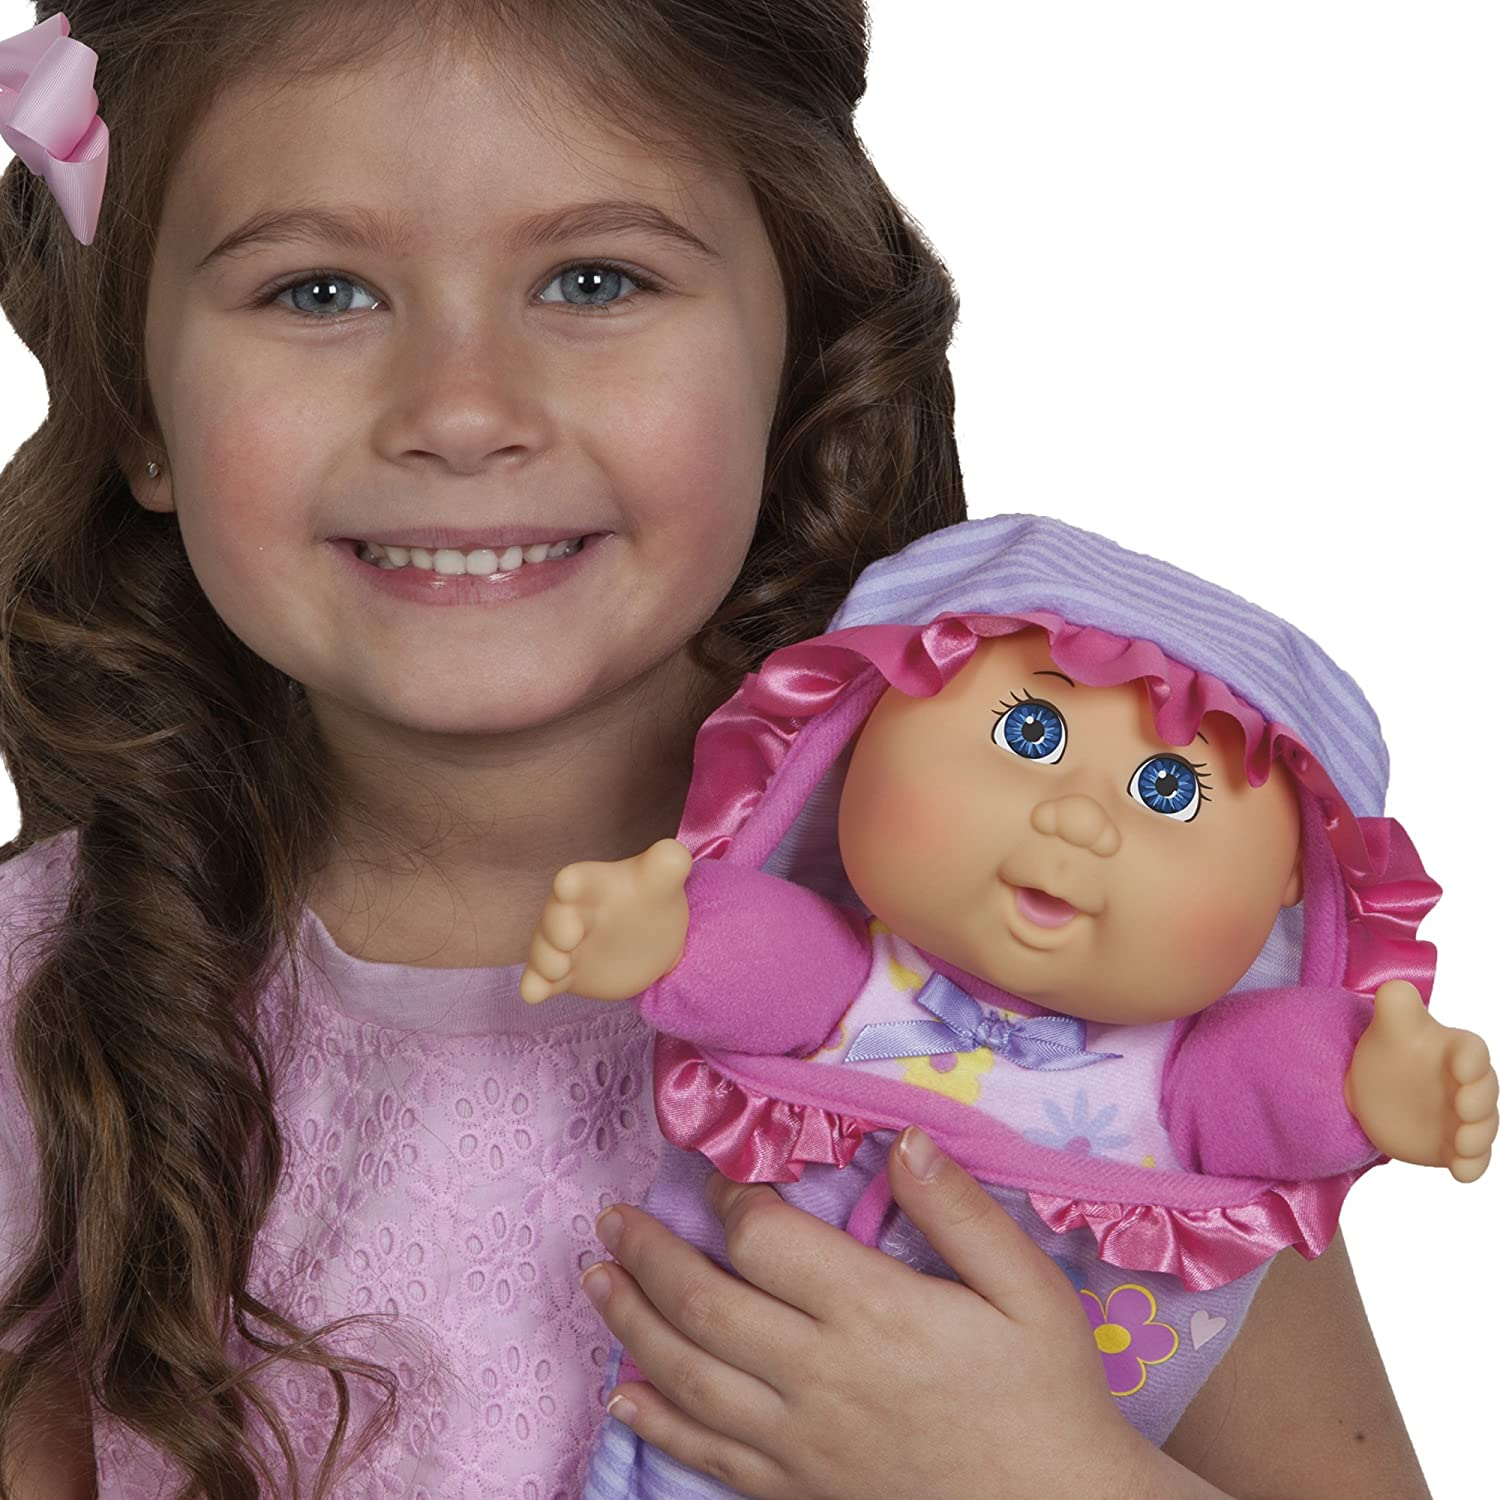 4a2b2e27bc6 Amazon.com: Cabbage Patch Kids Official, Newborn Baby Doll Girl - Comes  with Swaddle Blanket and Unique Adoption Birth Announcement: Toys & Games